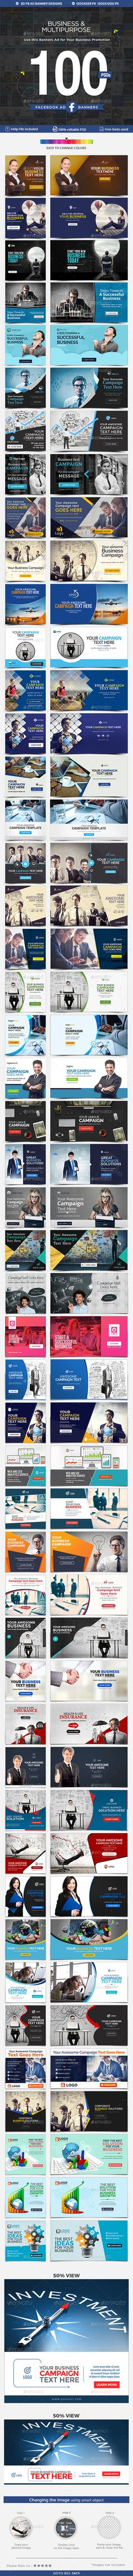 Facebook Ad Banners - 50 Designs -  PSD Template • Download ➝ https://graphicriver.net/item/facebook-ad-banners-50-designs-2-sizes-each/17094322?ref=pxcr